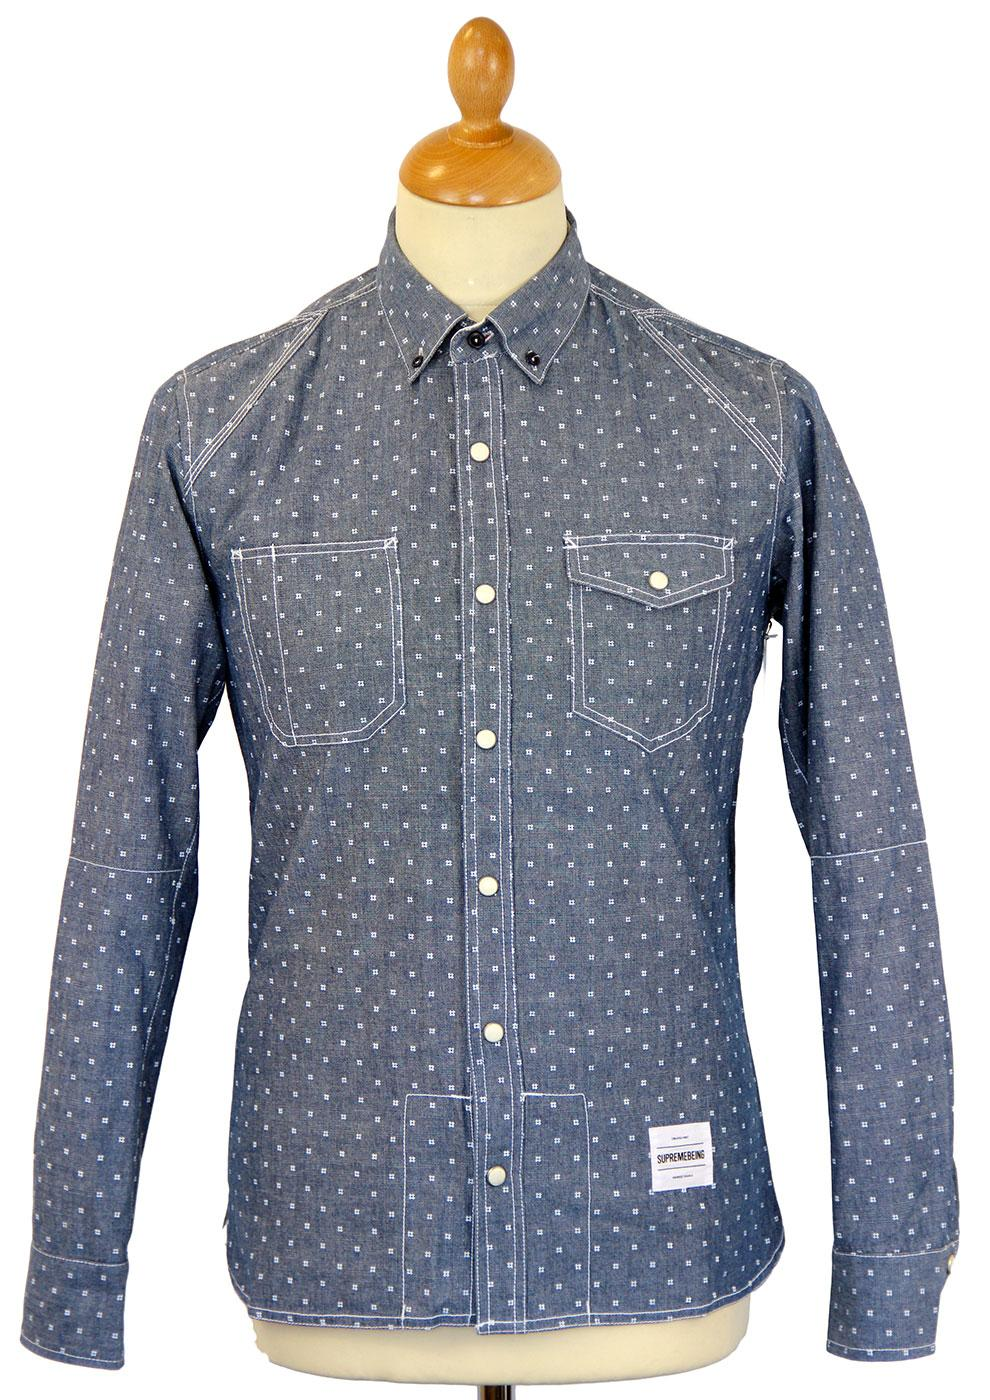 Union Chambray SUPREMEBEING Retro Western Shirt